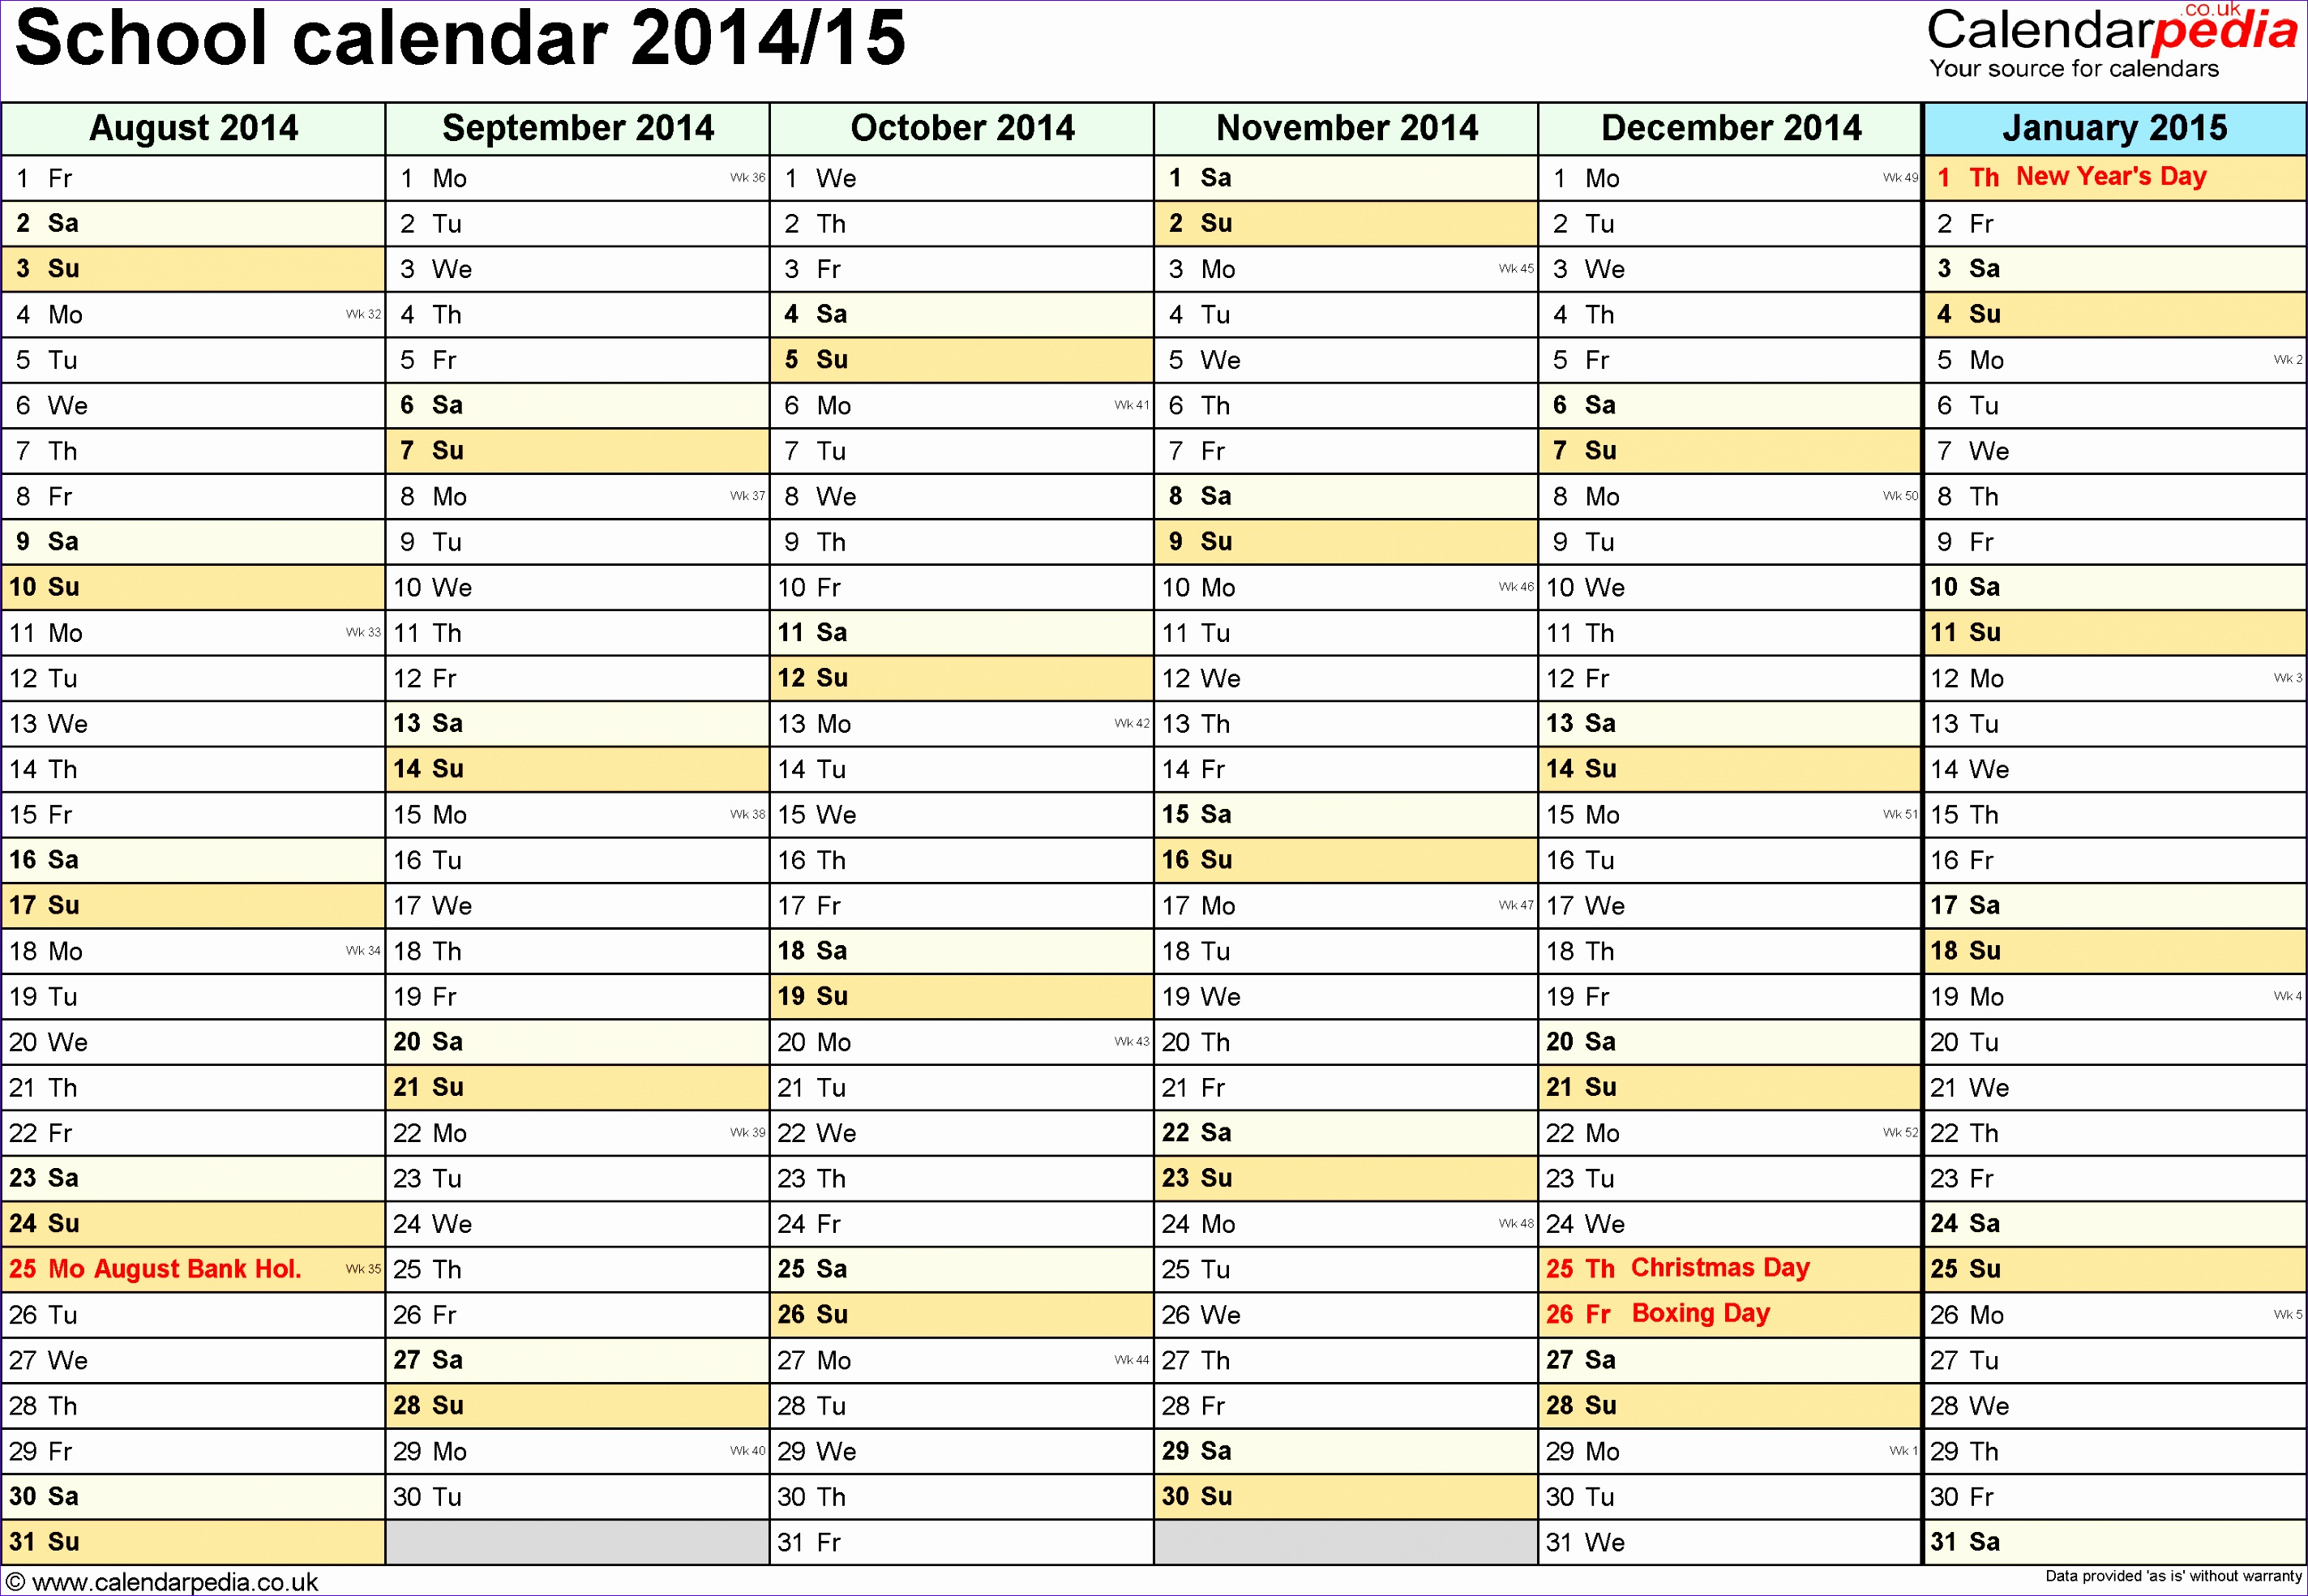 Ms Excel Calendar Template 2014 W3kia Awesome School Calendars 2014 2015 as Free Printable Excel Templates